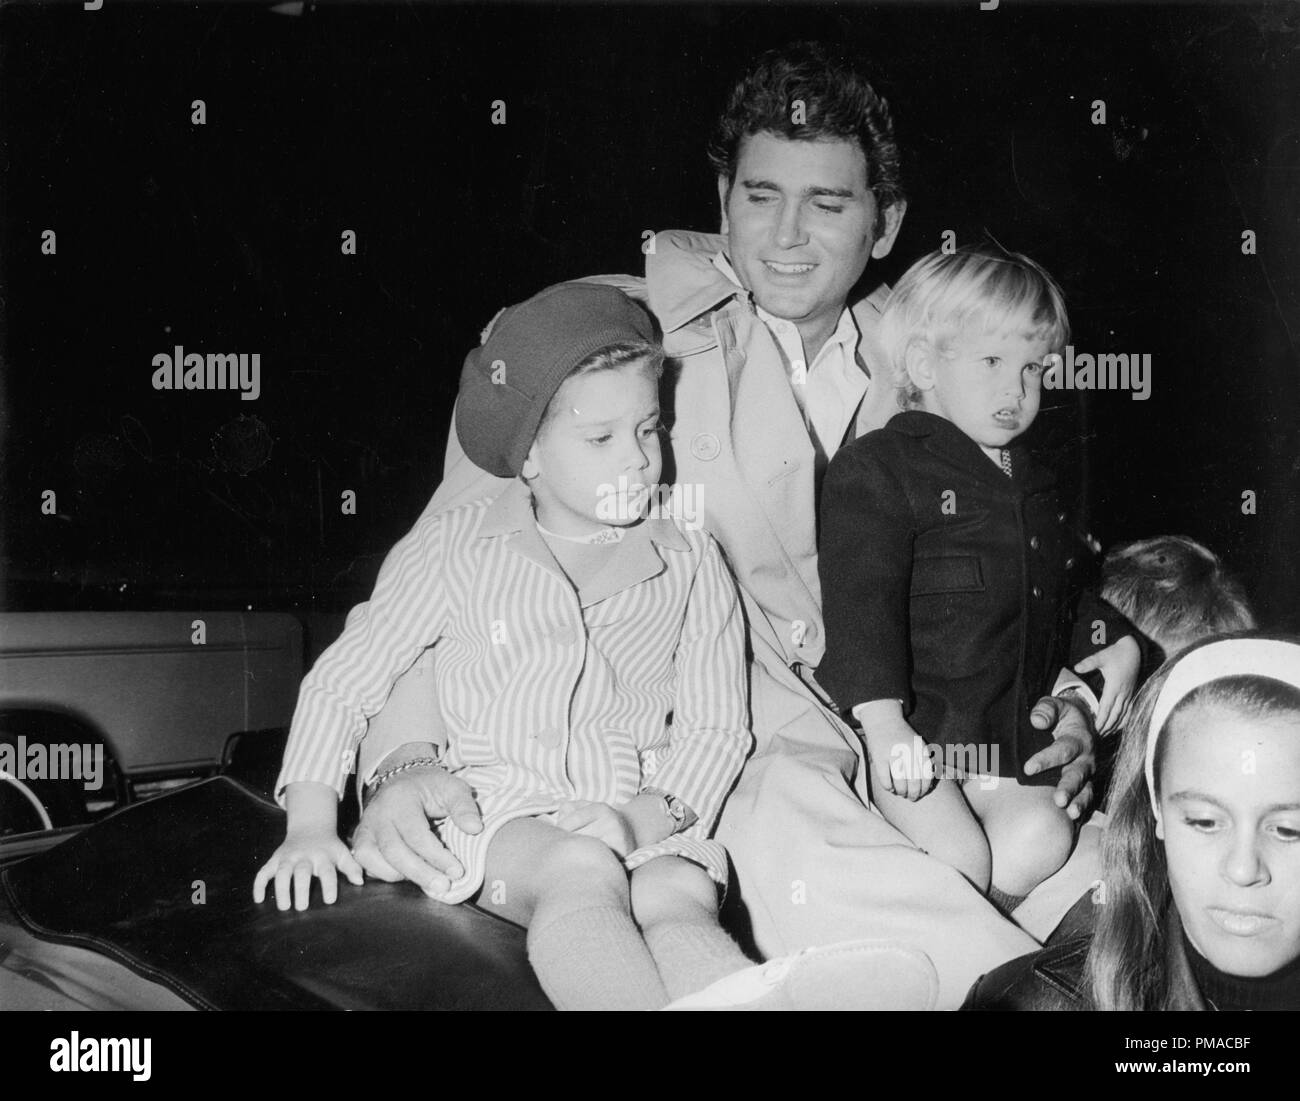 Lynn Christmas Parade 2019 Michael Landon with wife Lynn and children at the Hollywood